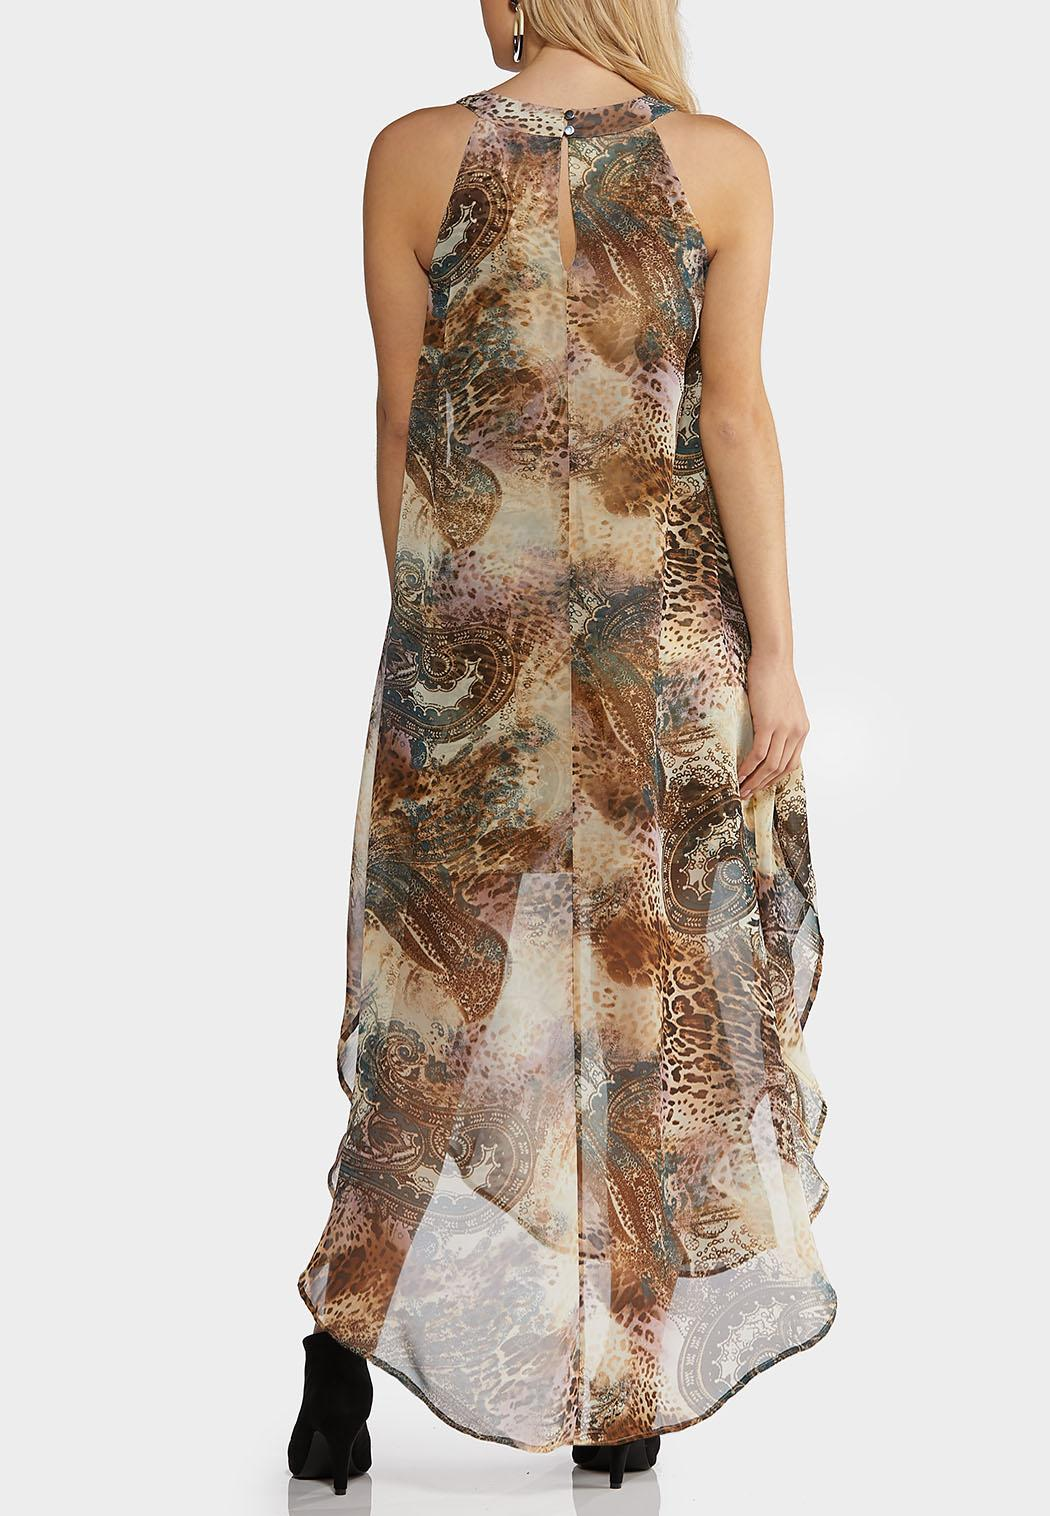 Wild About You Maxi Dress (Item #44199887)